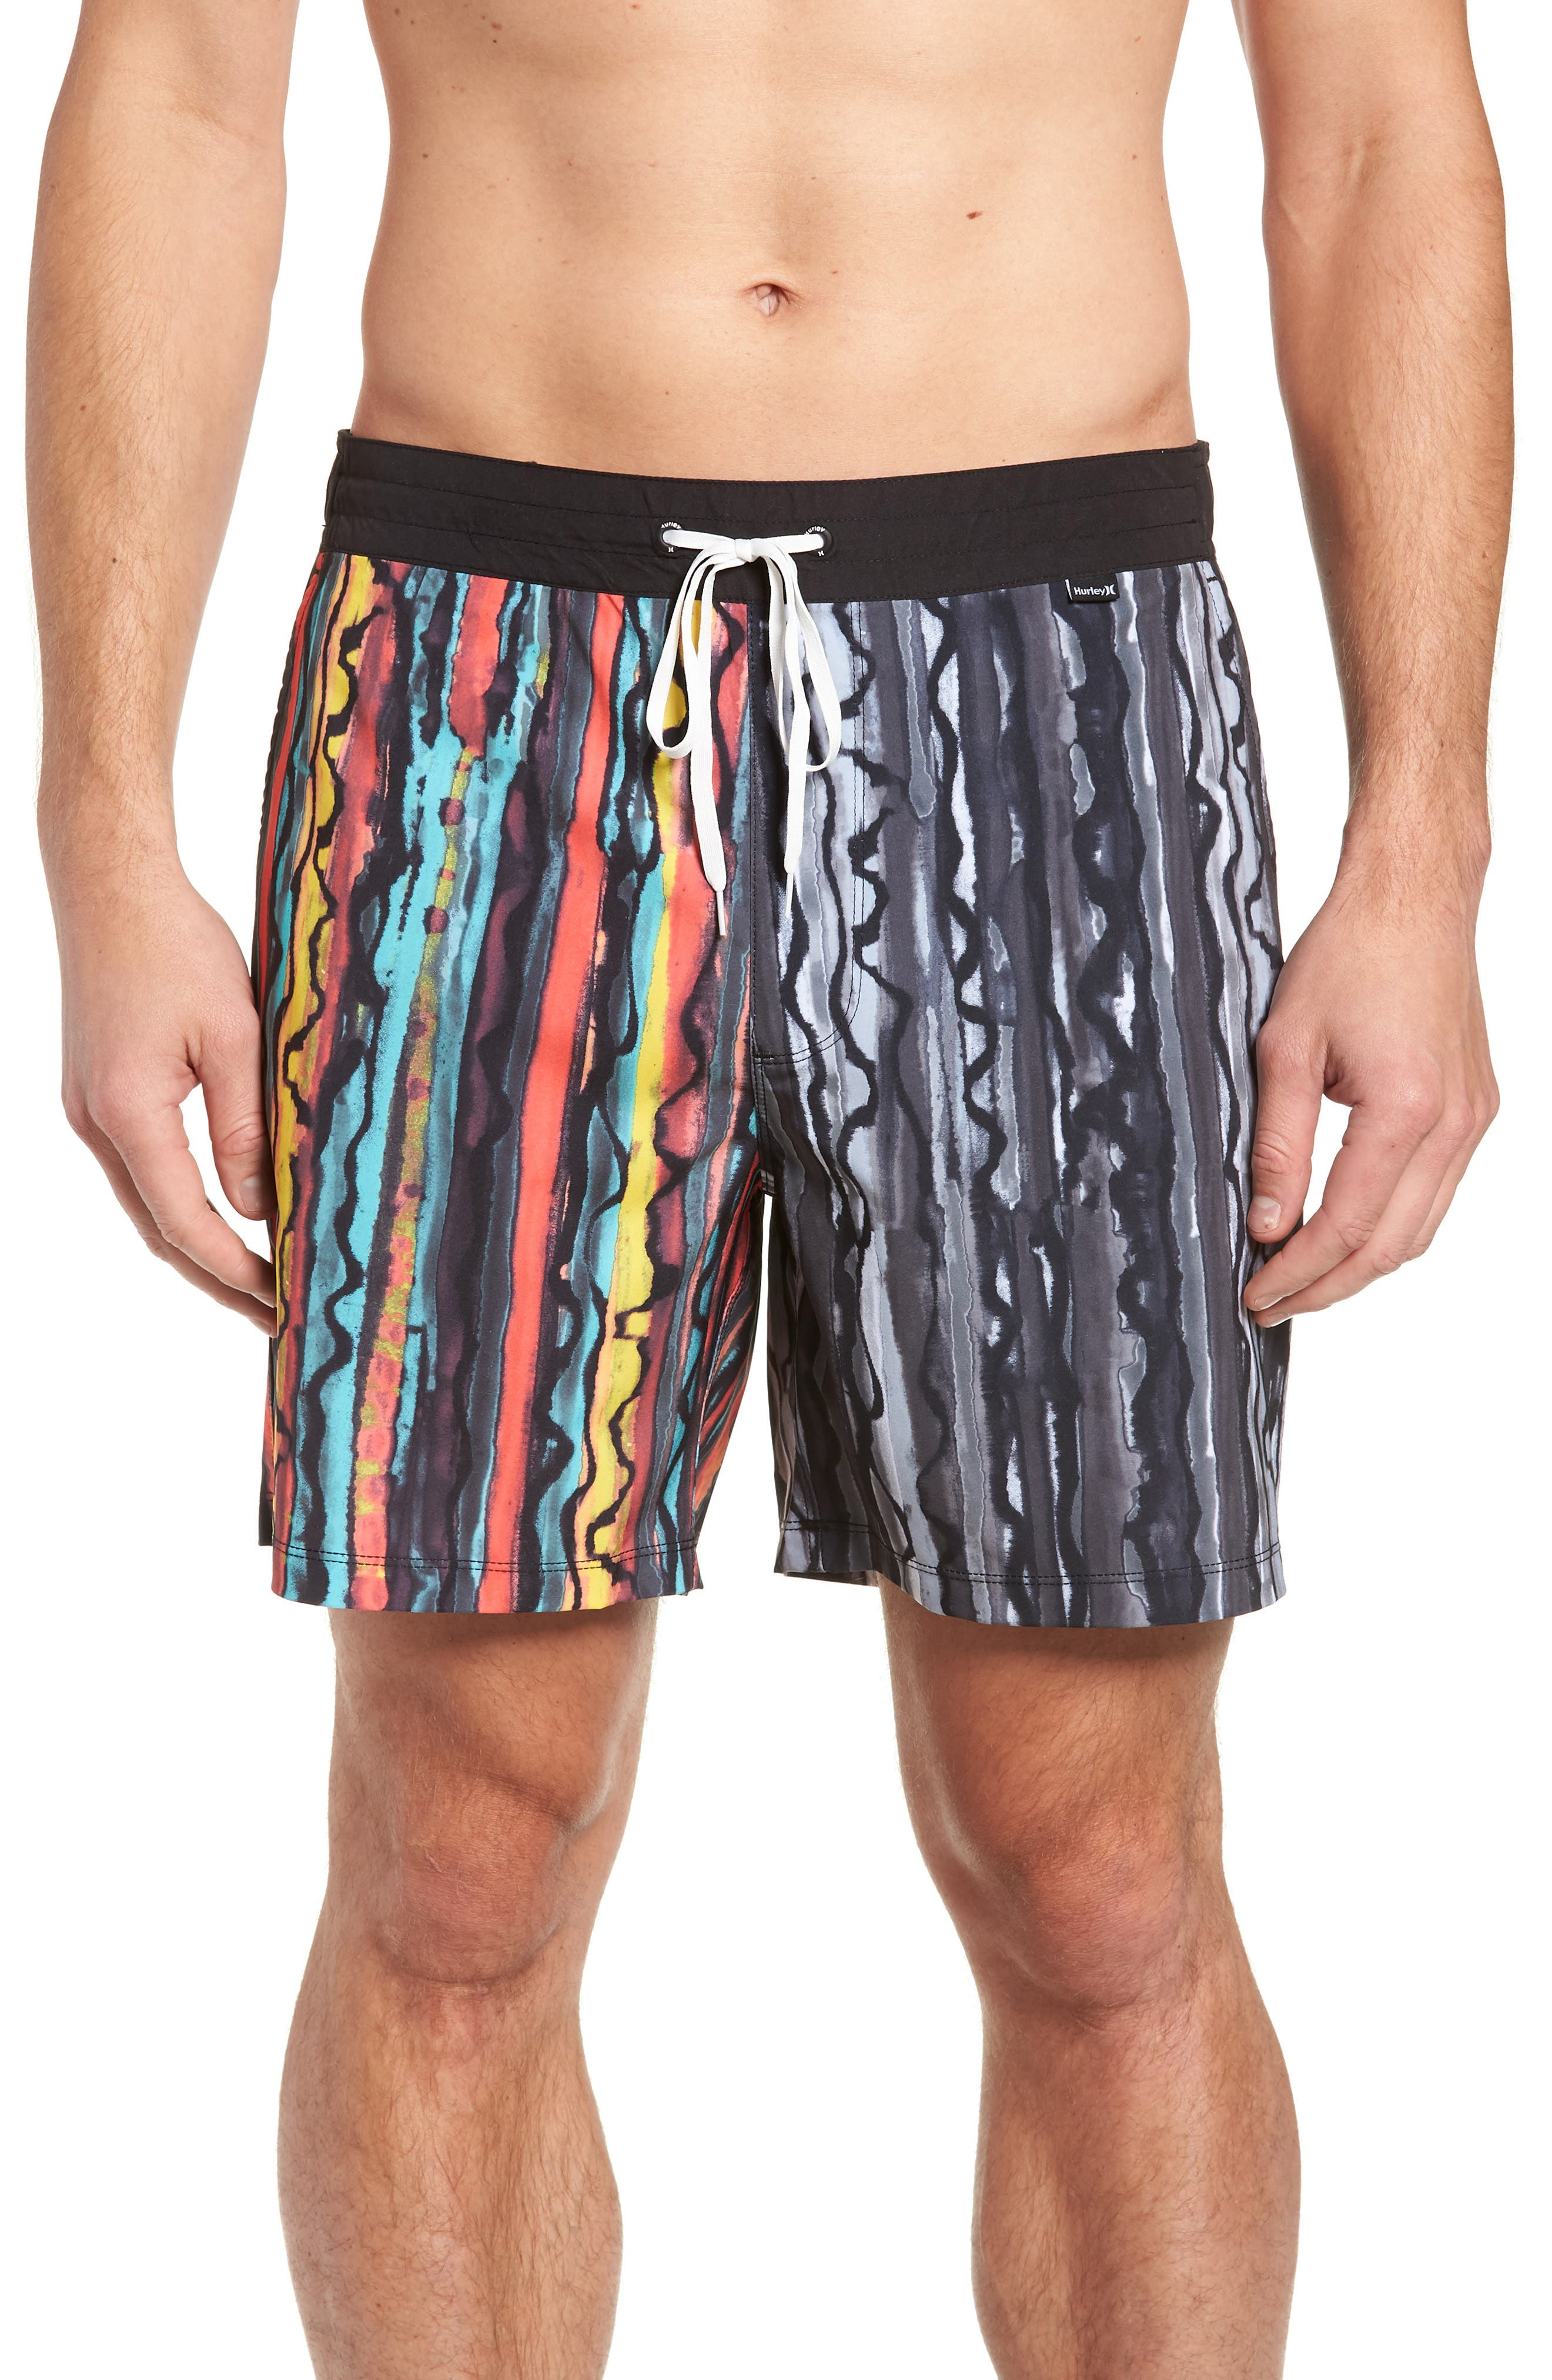 Hurley Phantom Glass Shop Valley Swim Trunks, Black